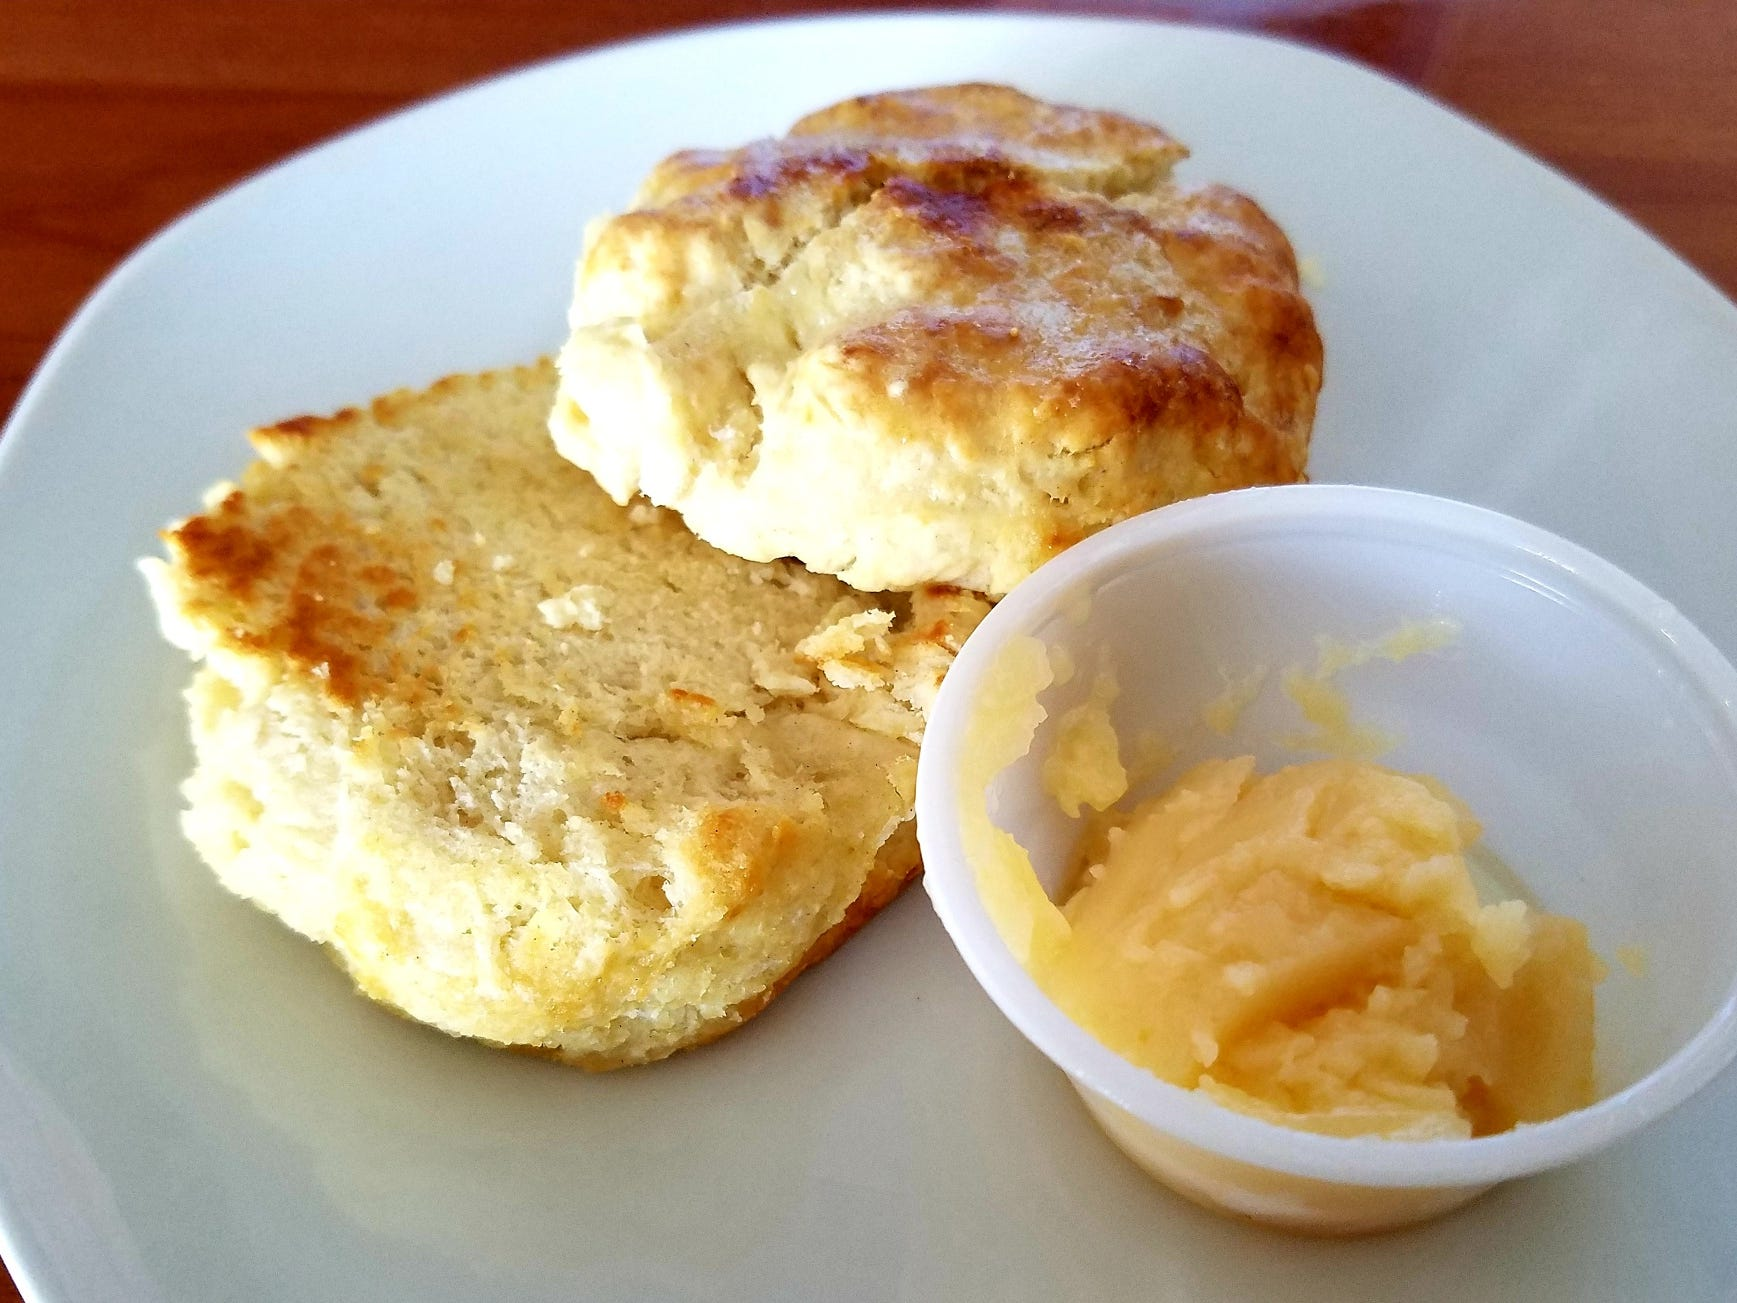 Housemade buttermilk biscuits are baked daily and served with honey butter.